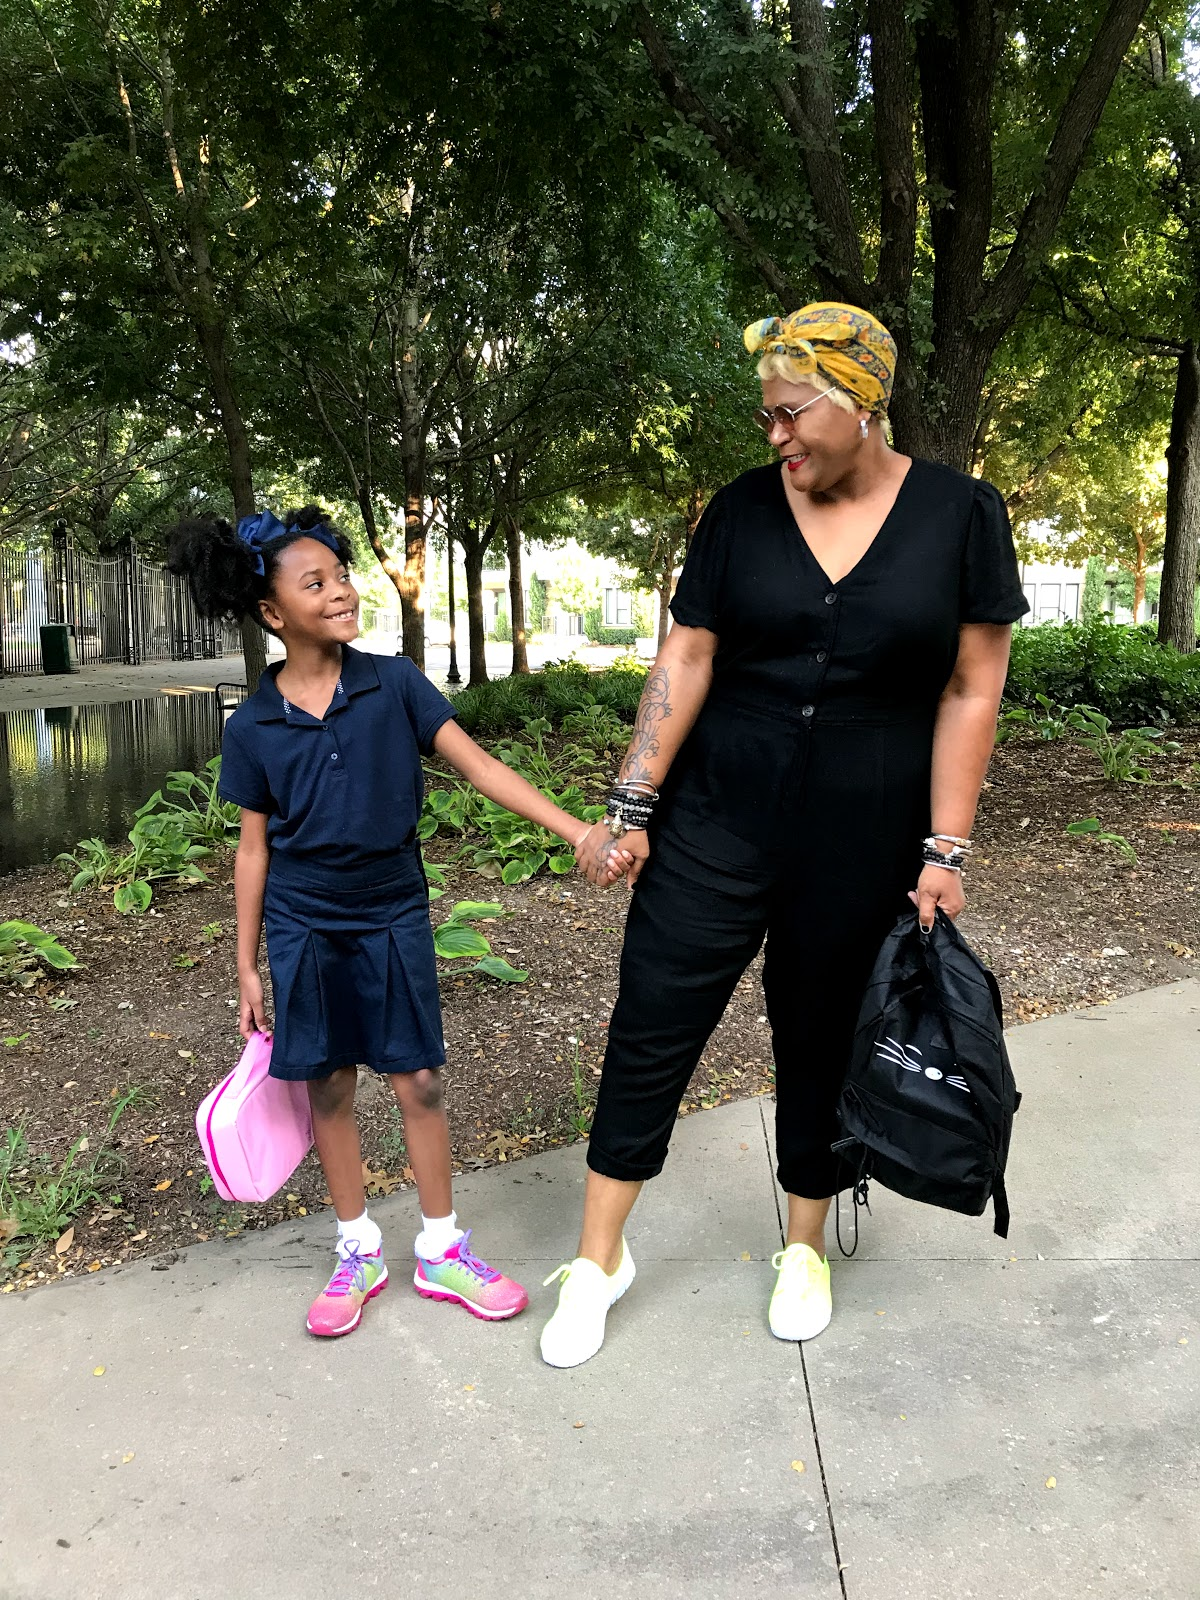 Image: Tangie Bell and Her daughter walking to school as part of her morning routine